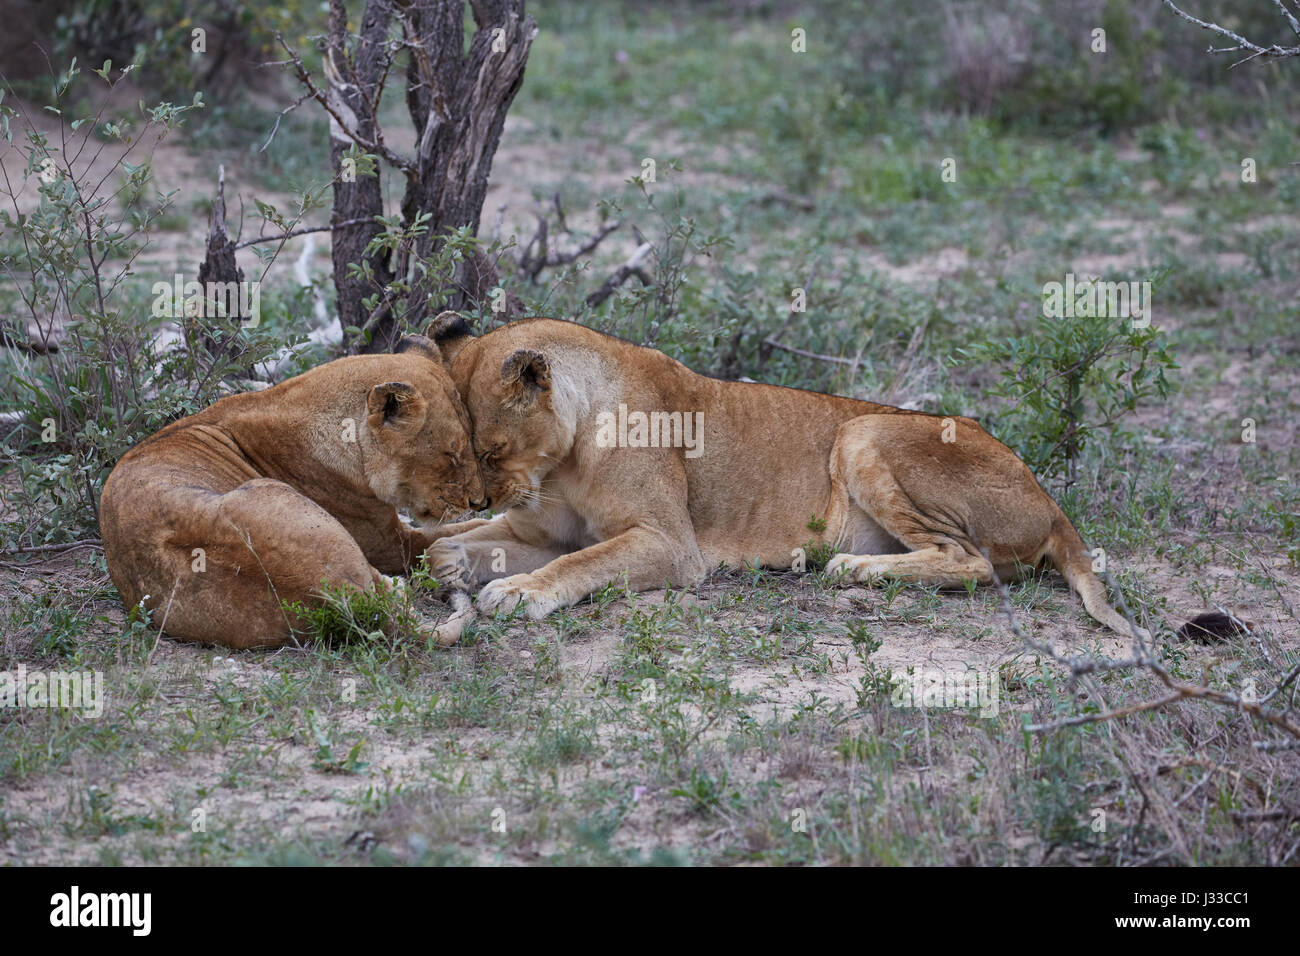 Lions caressing each other in Krueger National park, South Africa, Africa - Stock Image